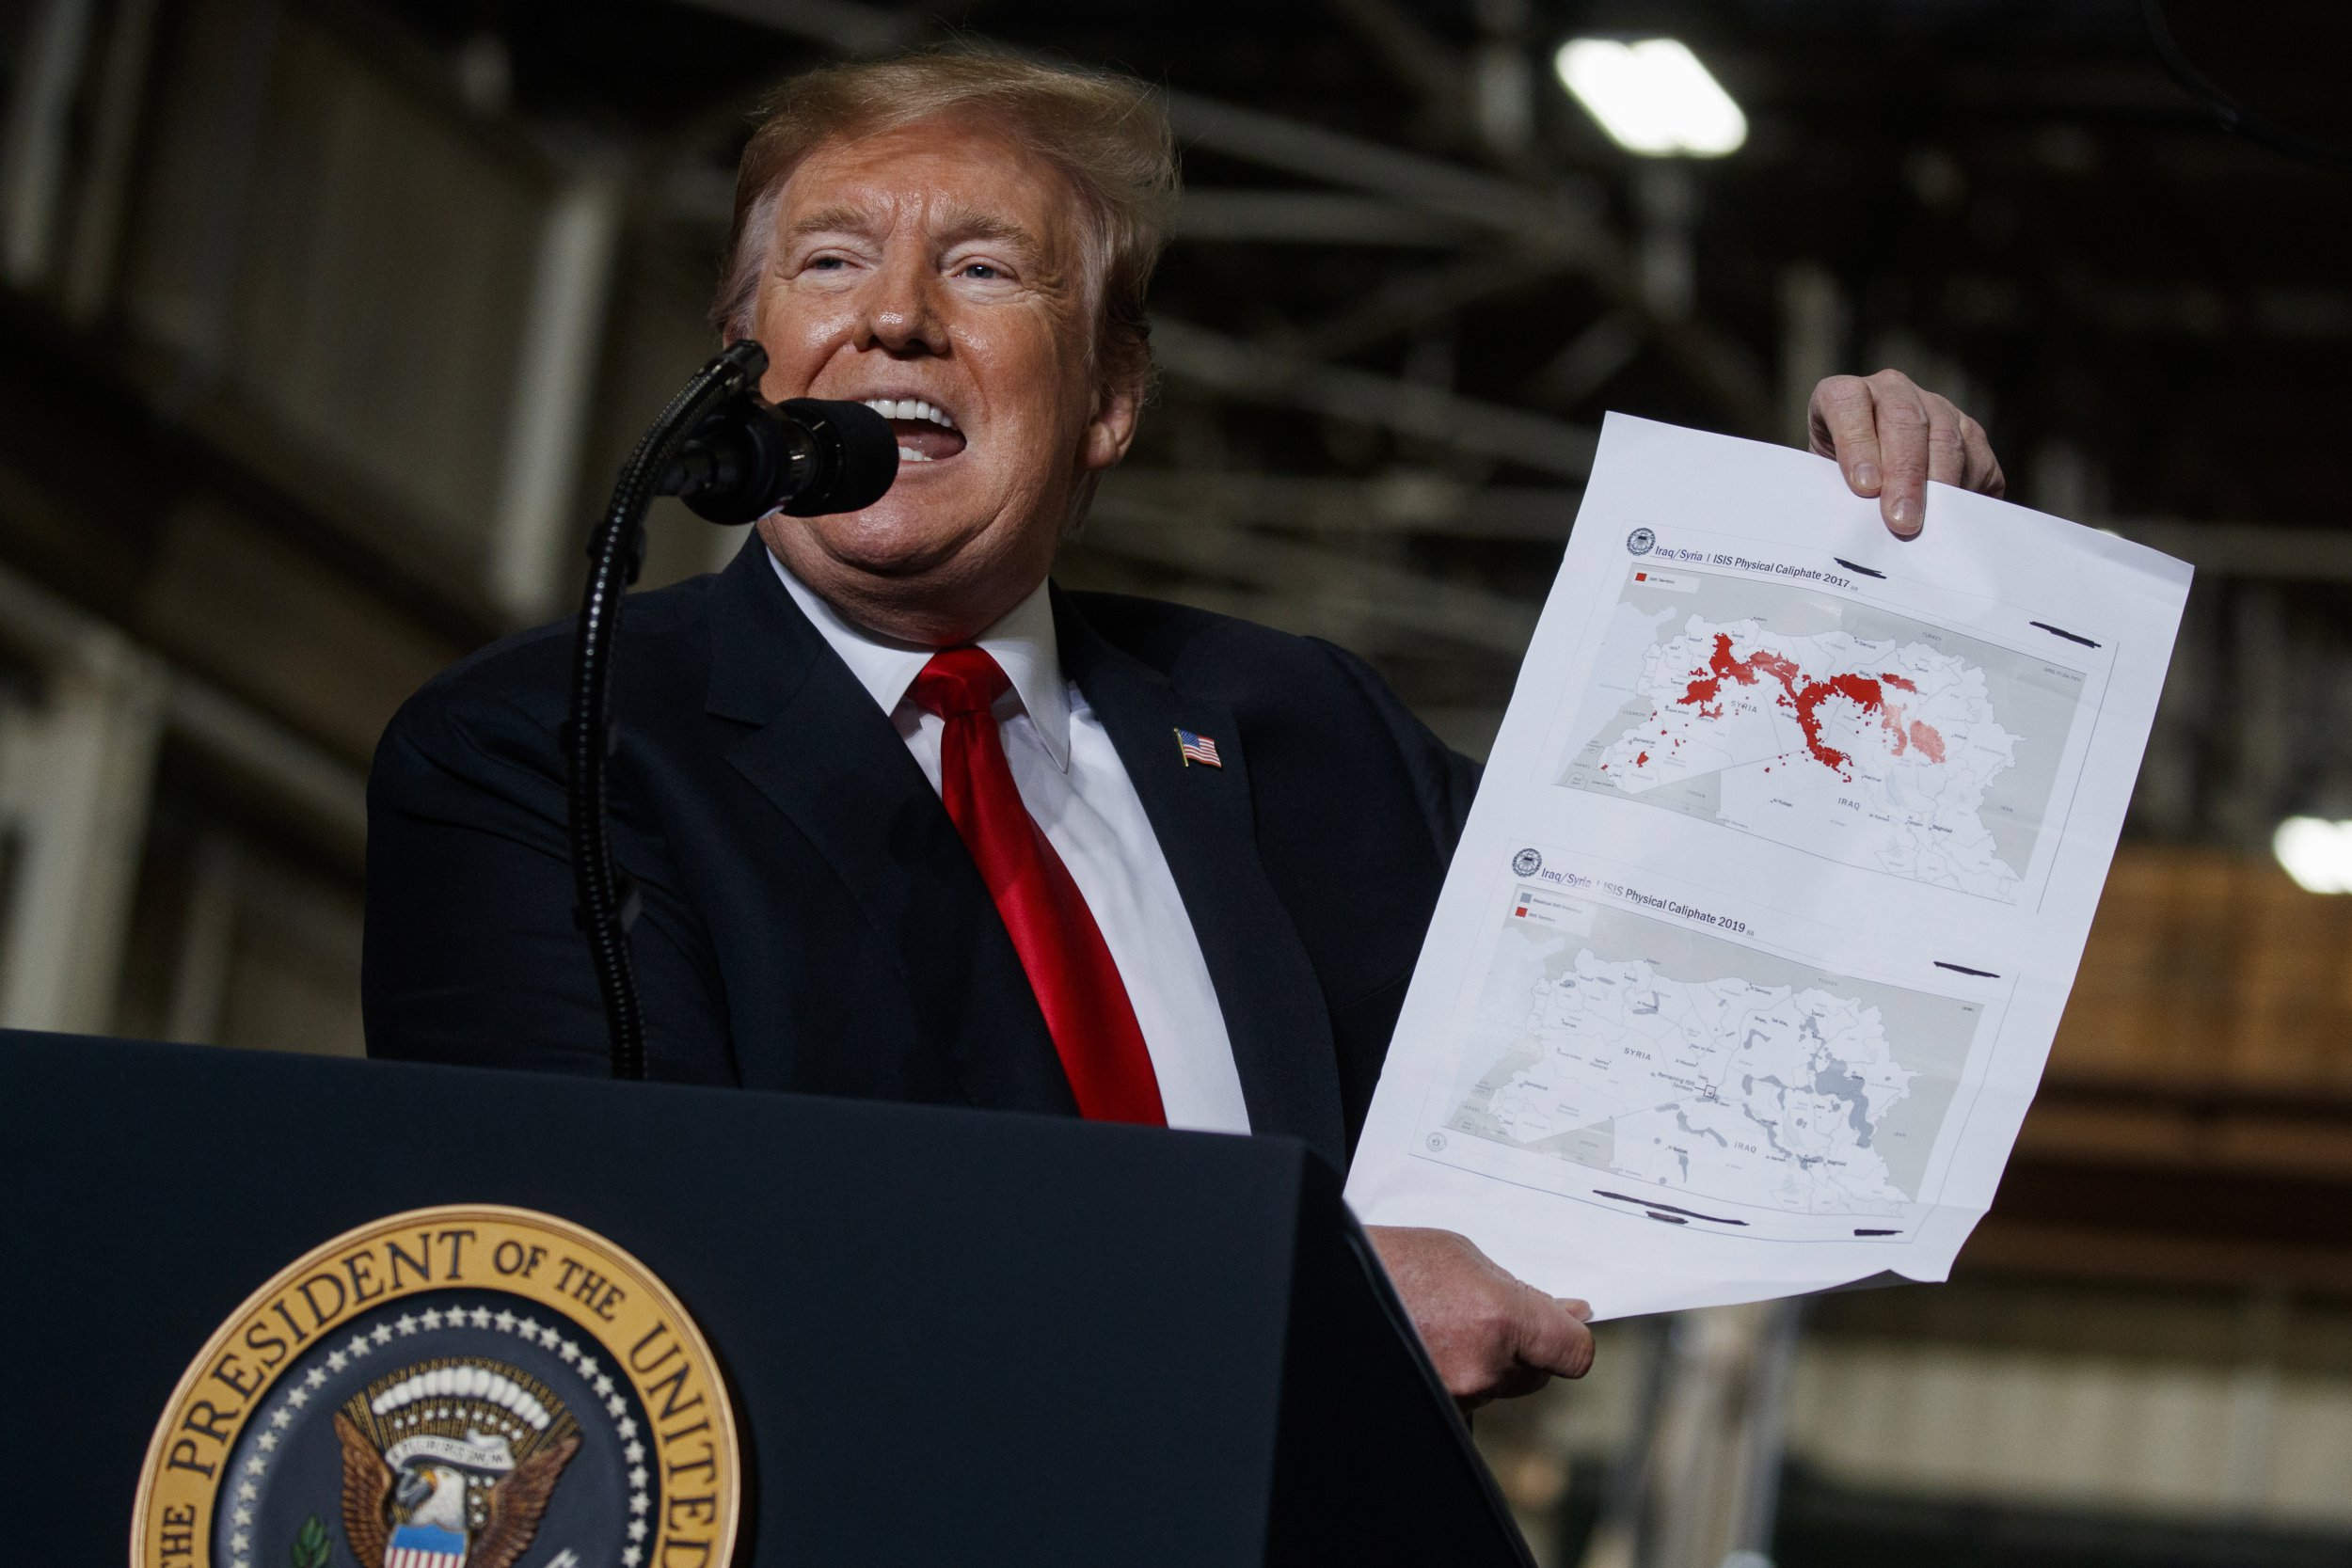 President Donald Trump holds up a chart documenting ISIS land loss in Iraq and Syria as delivers remarks at the Lima Army Tank Plant, Wednesday, March 20, 2019, in Lima, Ohio. (AP Photo/Evan Vucci)